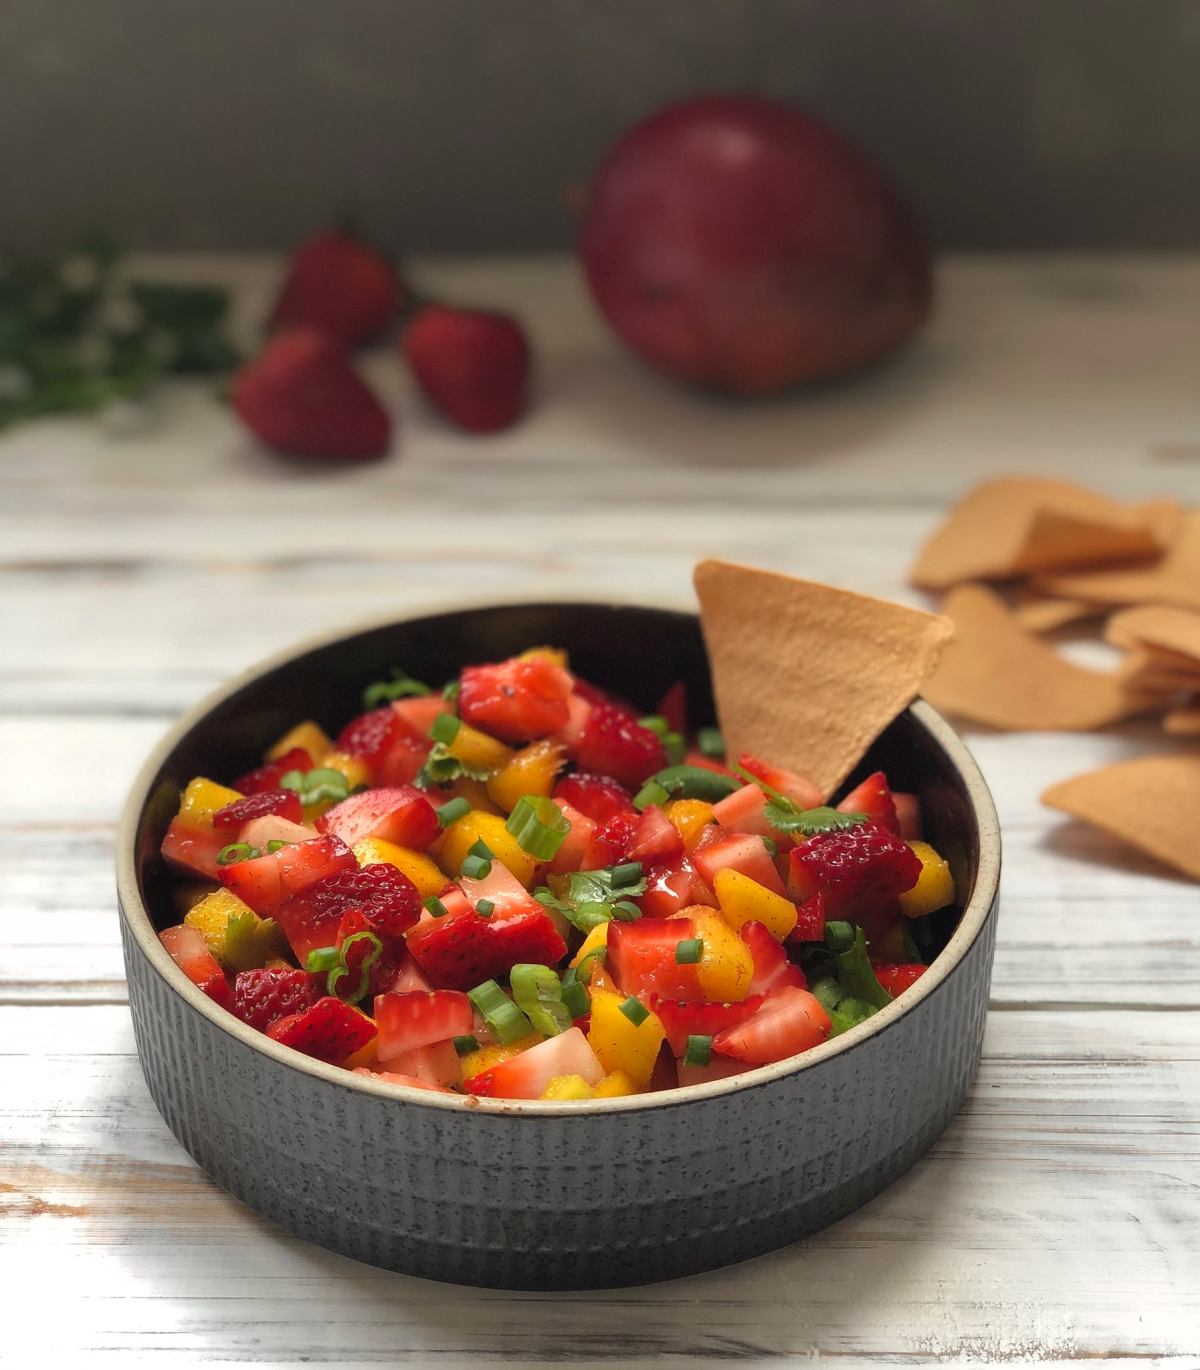 Tutu's Pantry - Strawberry Mango Salsa - 35